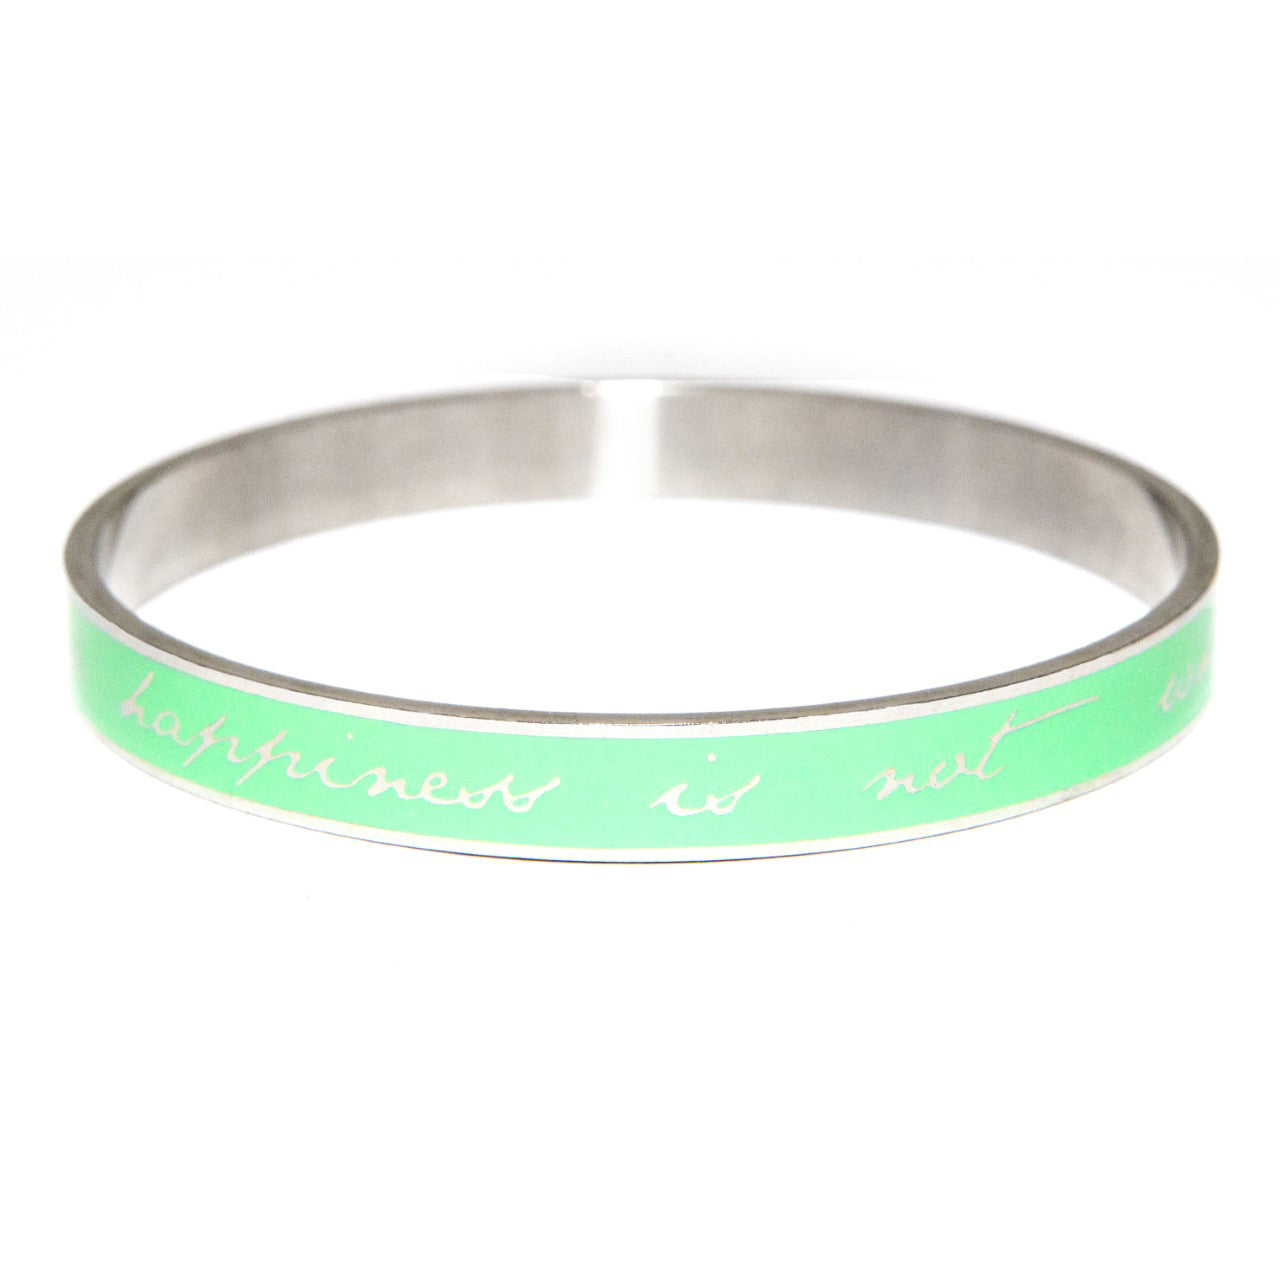 The Wishlet Bracelet - Turquoise Mint